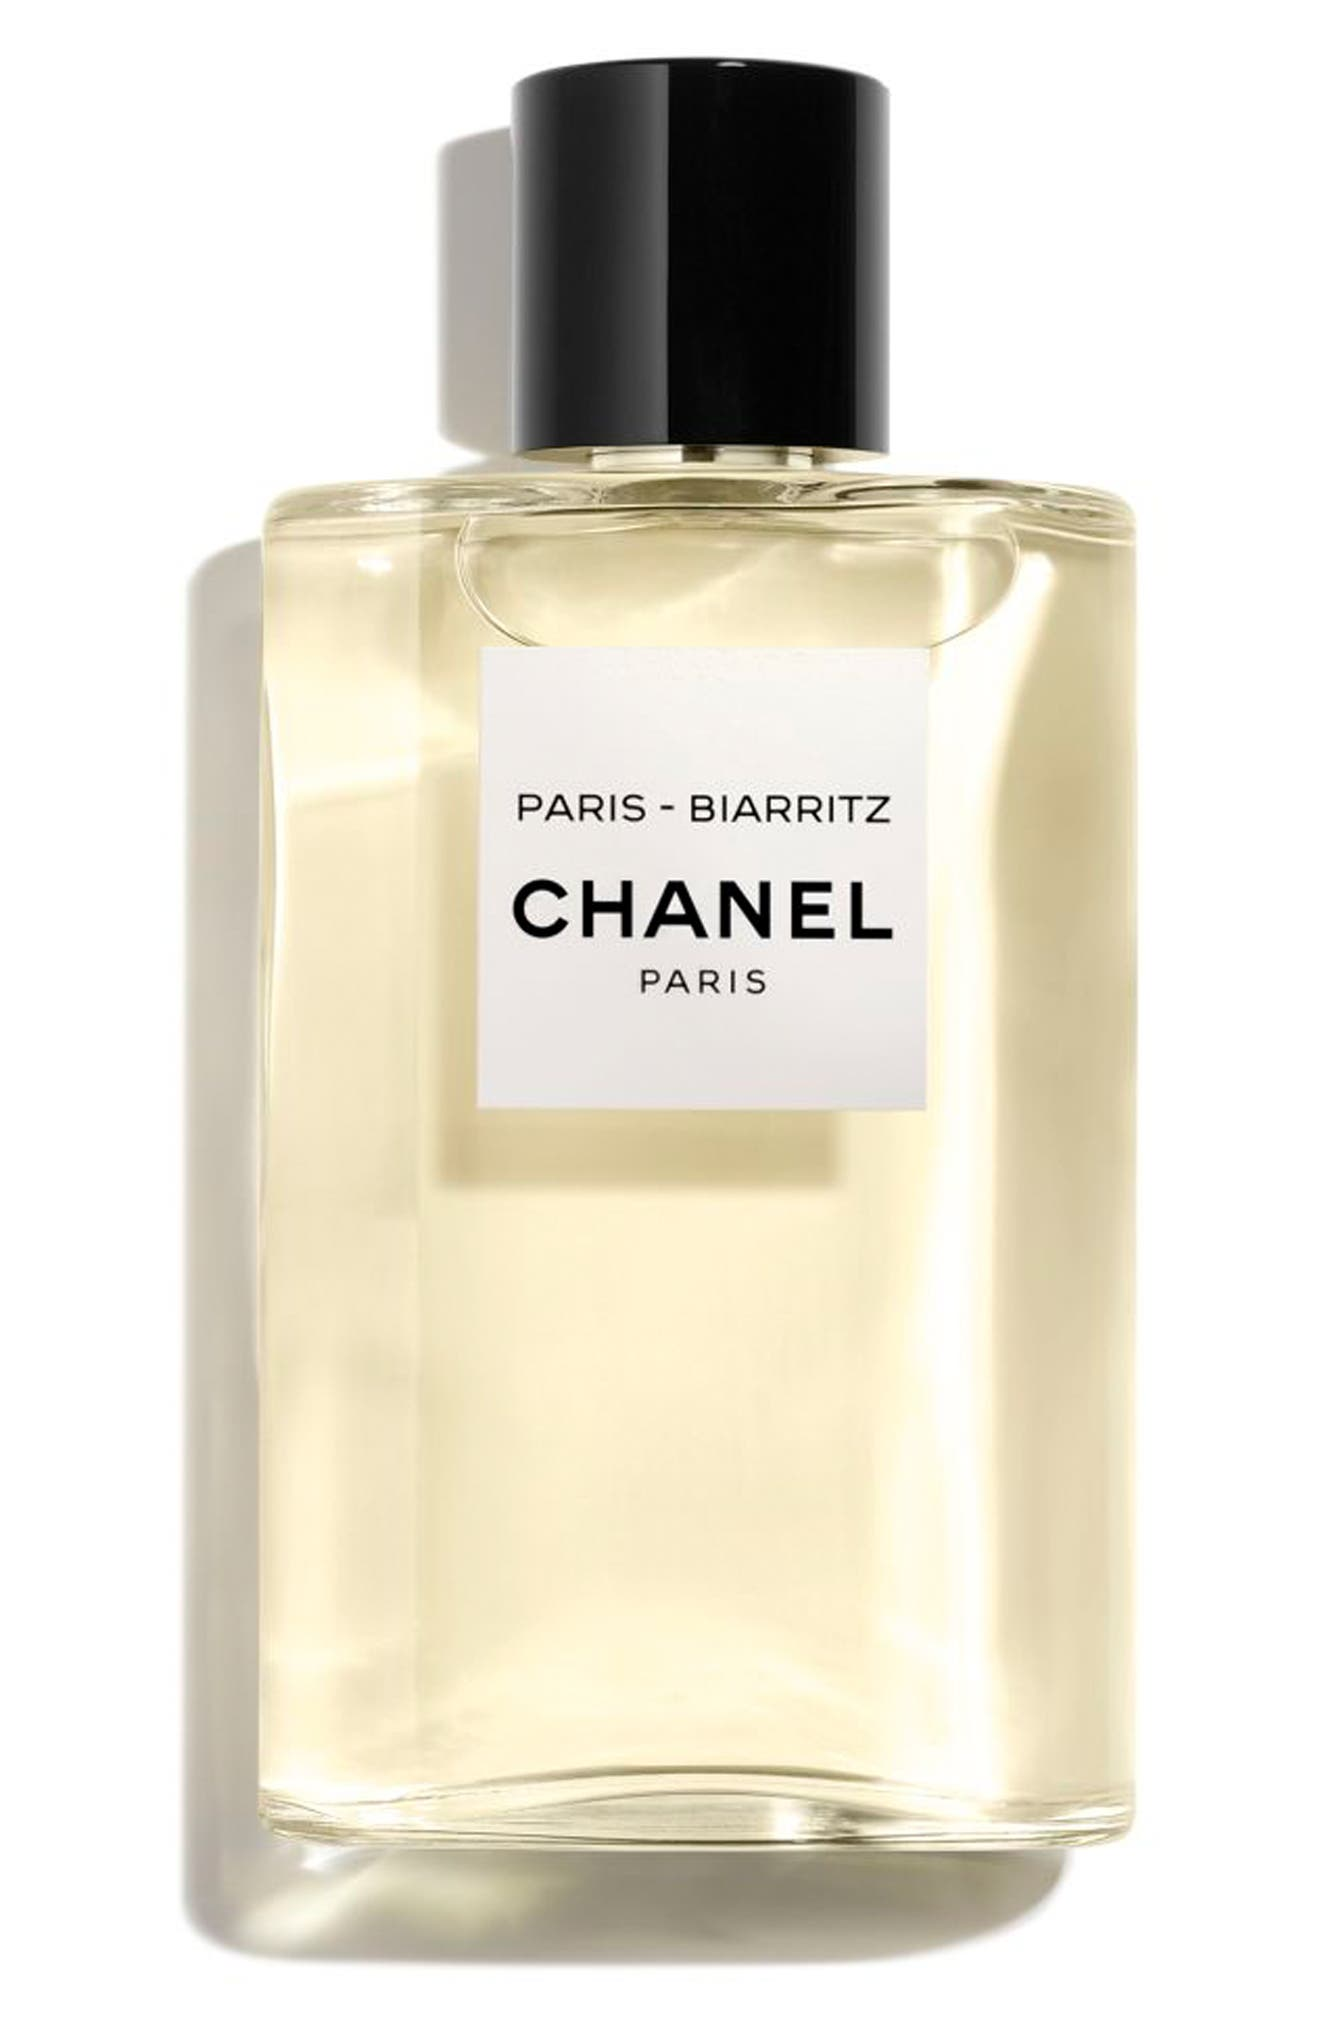 CHANEL,                             LES EAUX DE CHANEL PARIS-BIARRITZ Eau de Toilette,                             Main thumbnail 1, color,                             NO COLOR